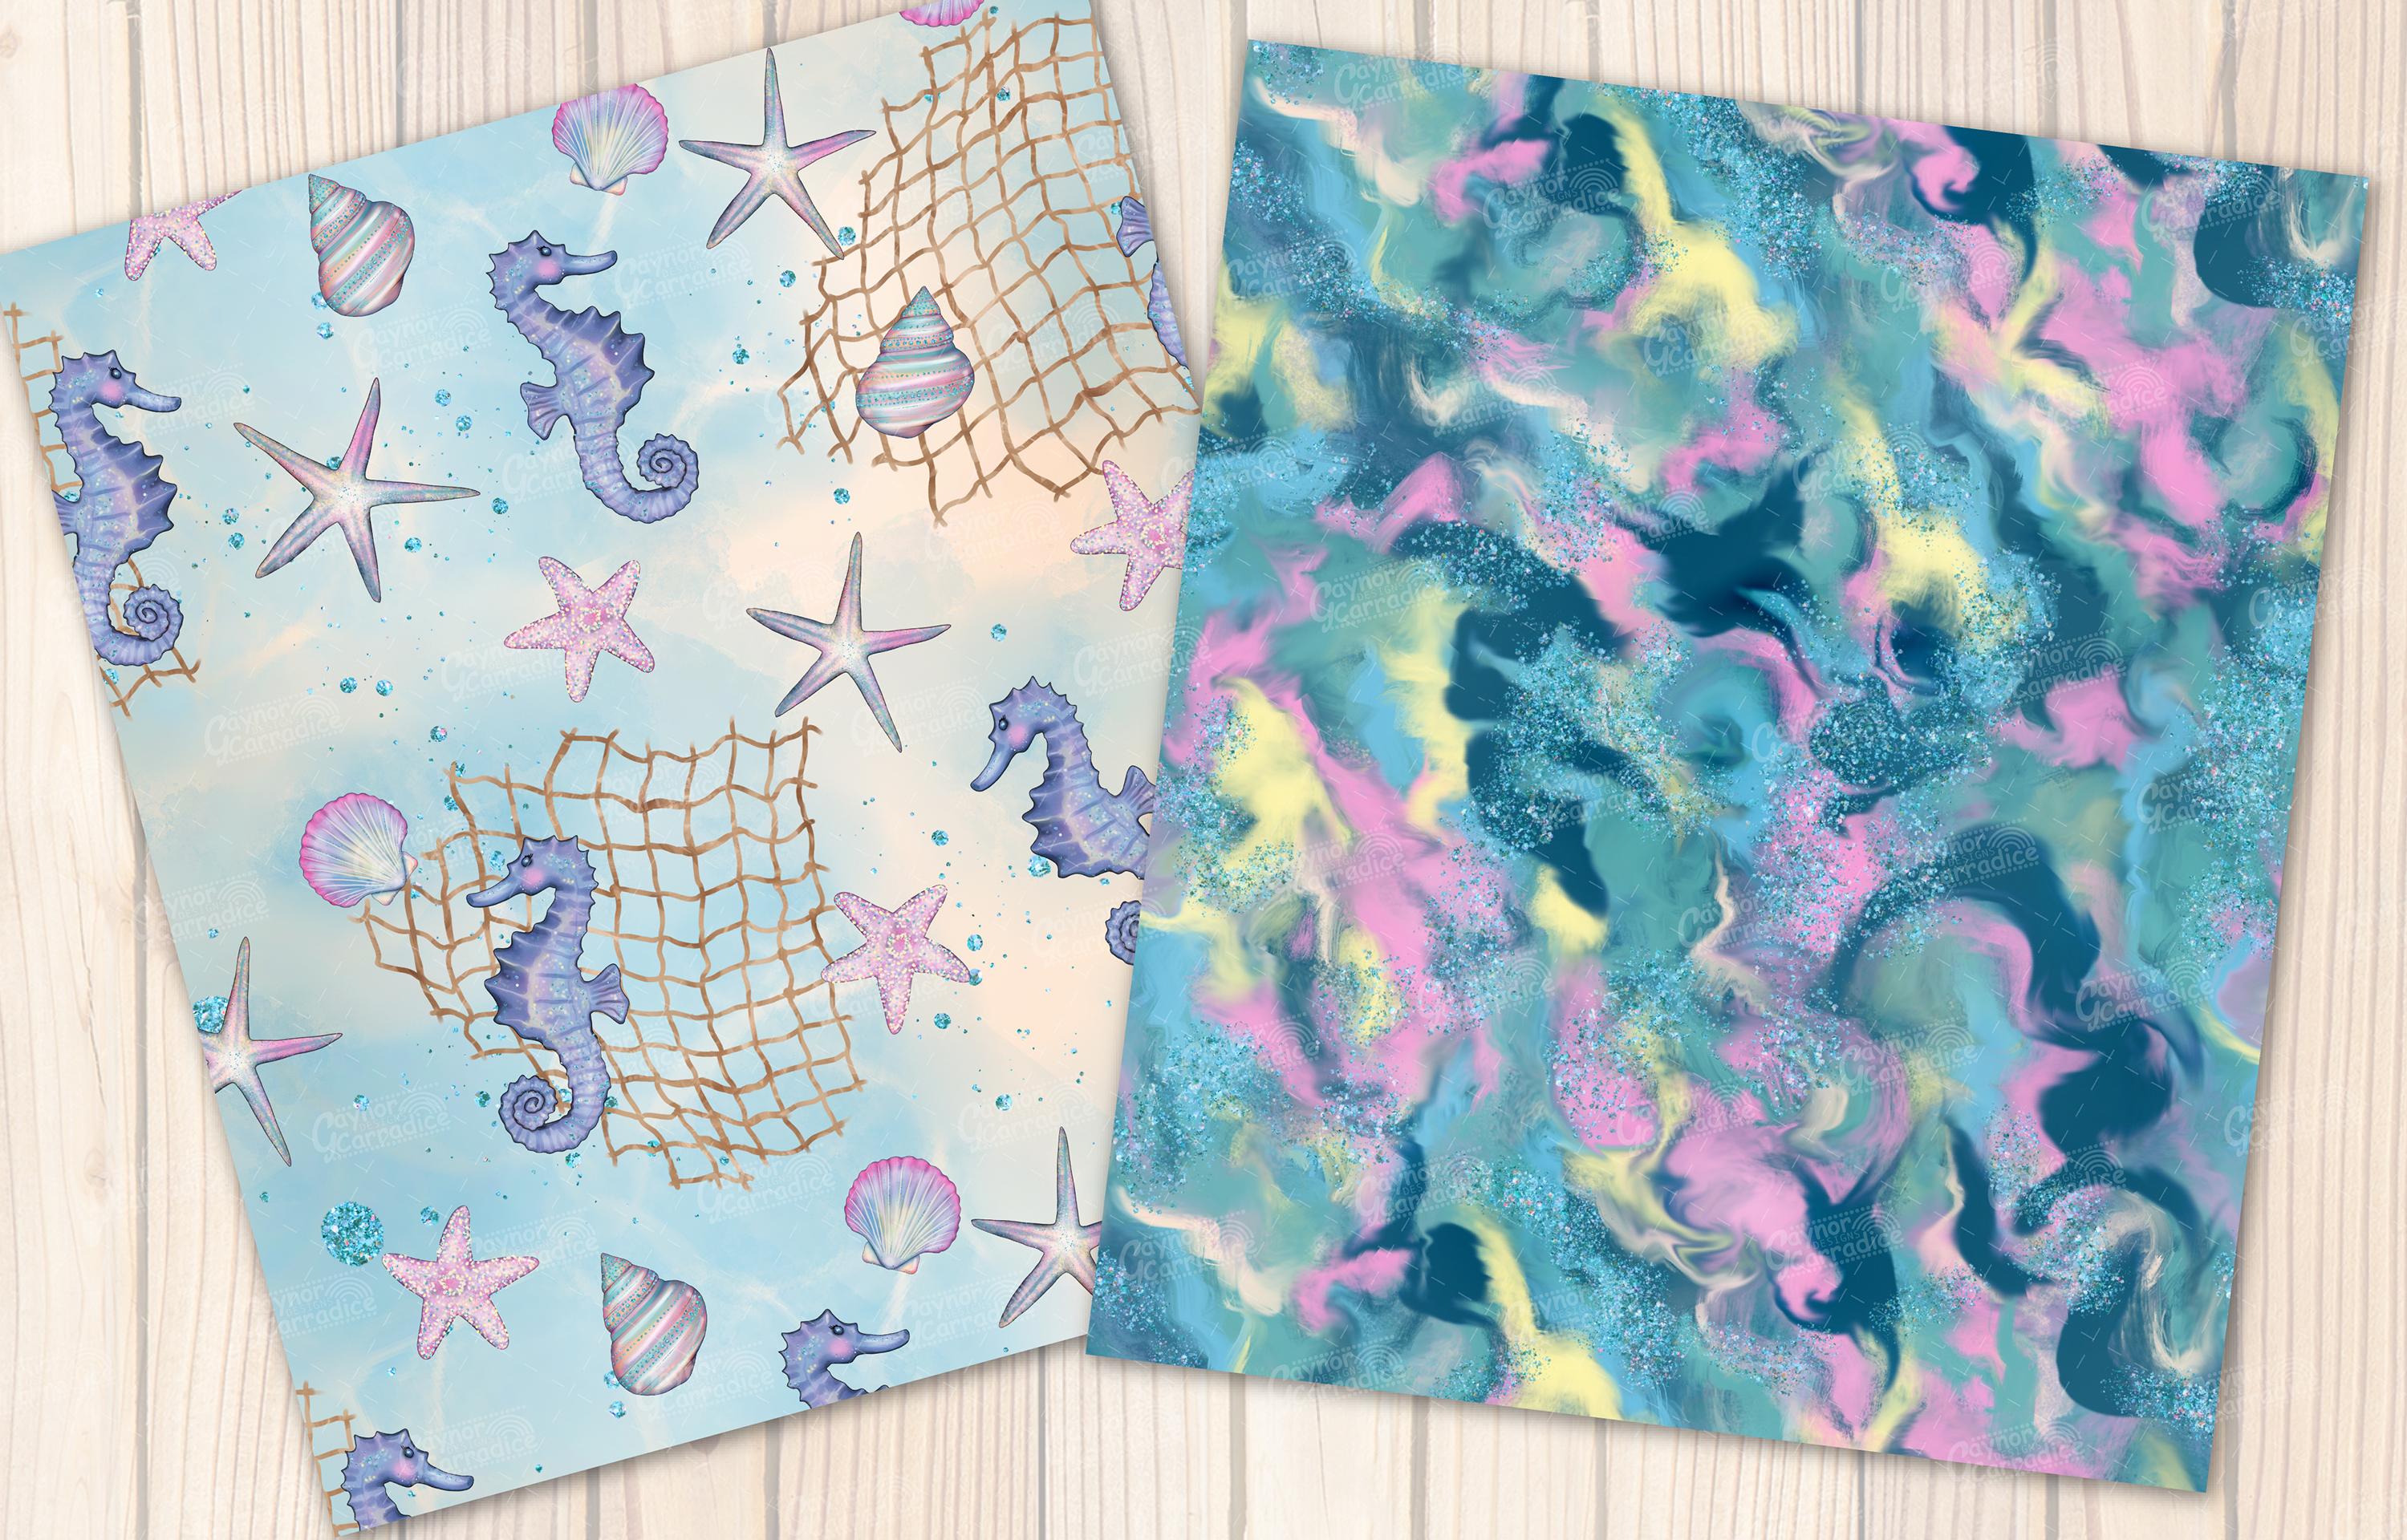 I washed up like this - Summer mermaid Seamless Patterns example image 3